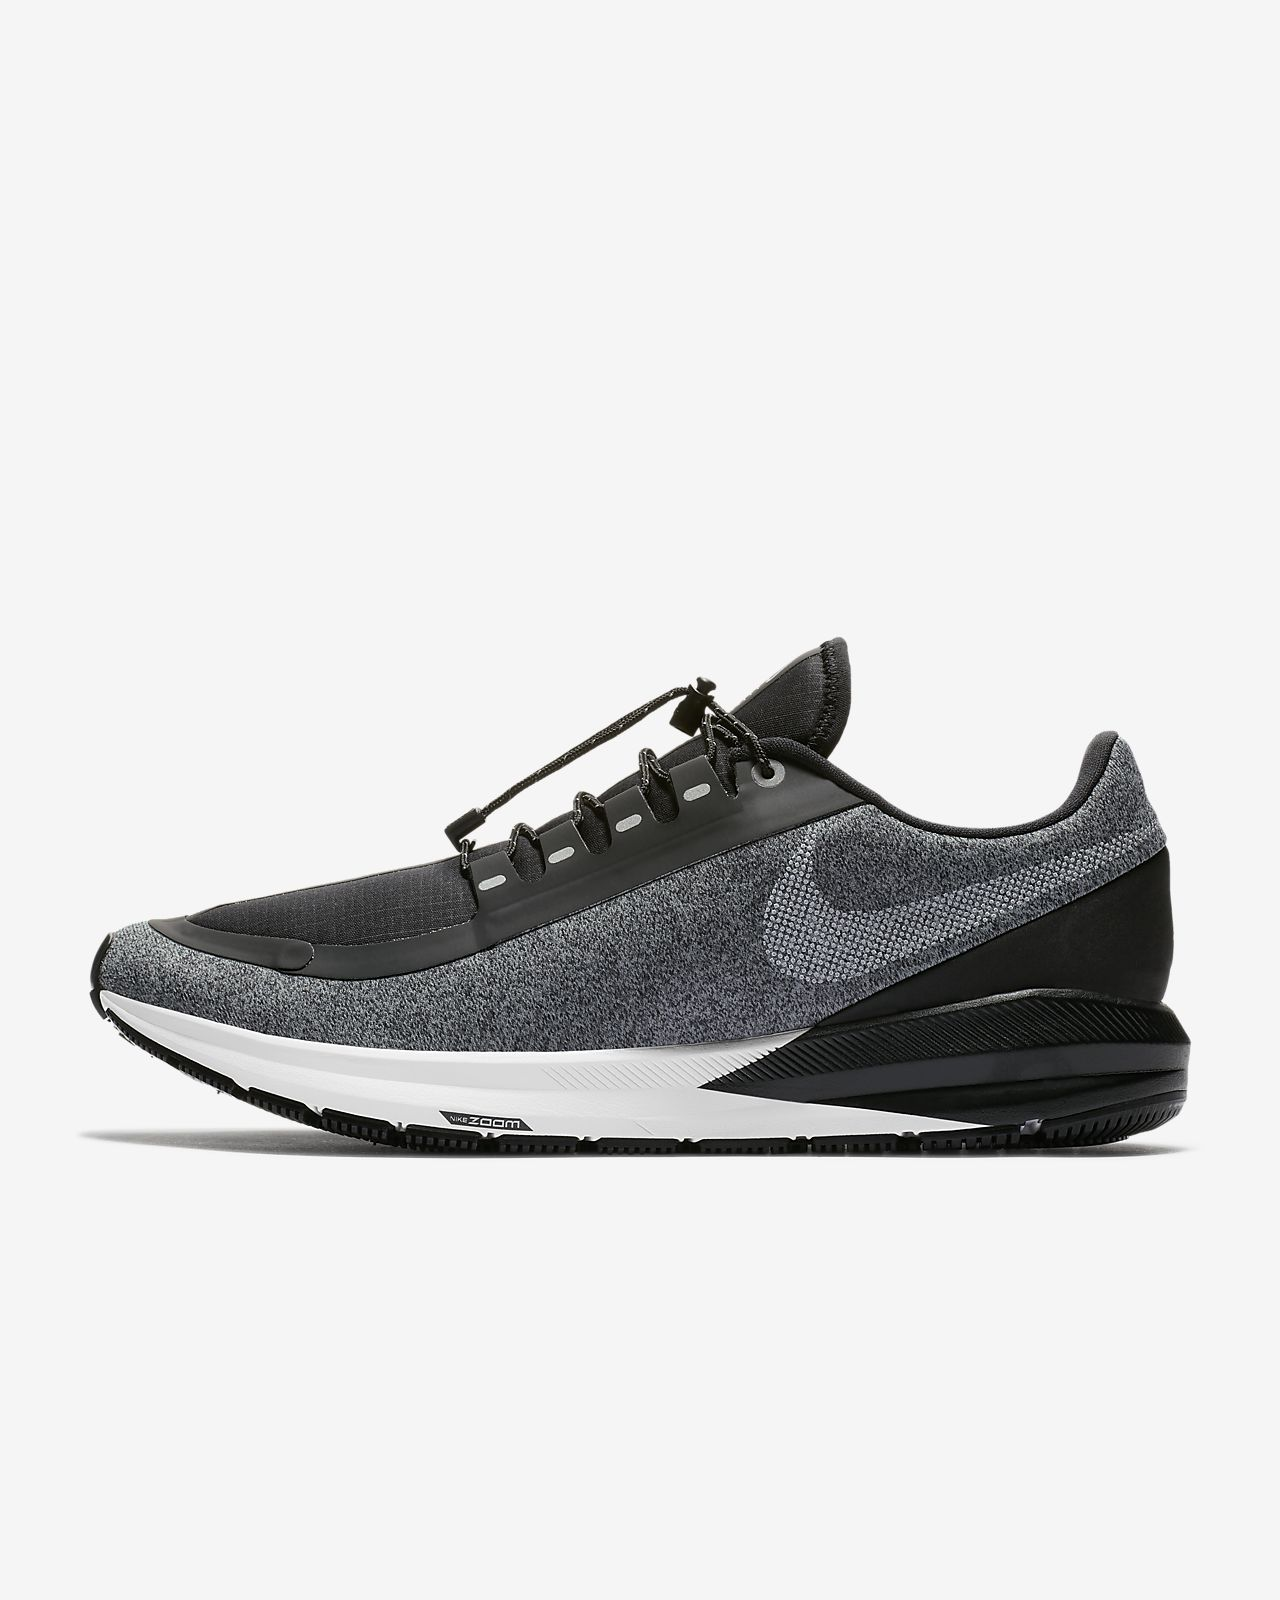 separation shoes f3c12 e26b4 ... Calzado de running para hombre Nike Air Zoom Structure 22 Shield  Water-Repellent